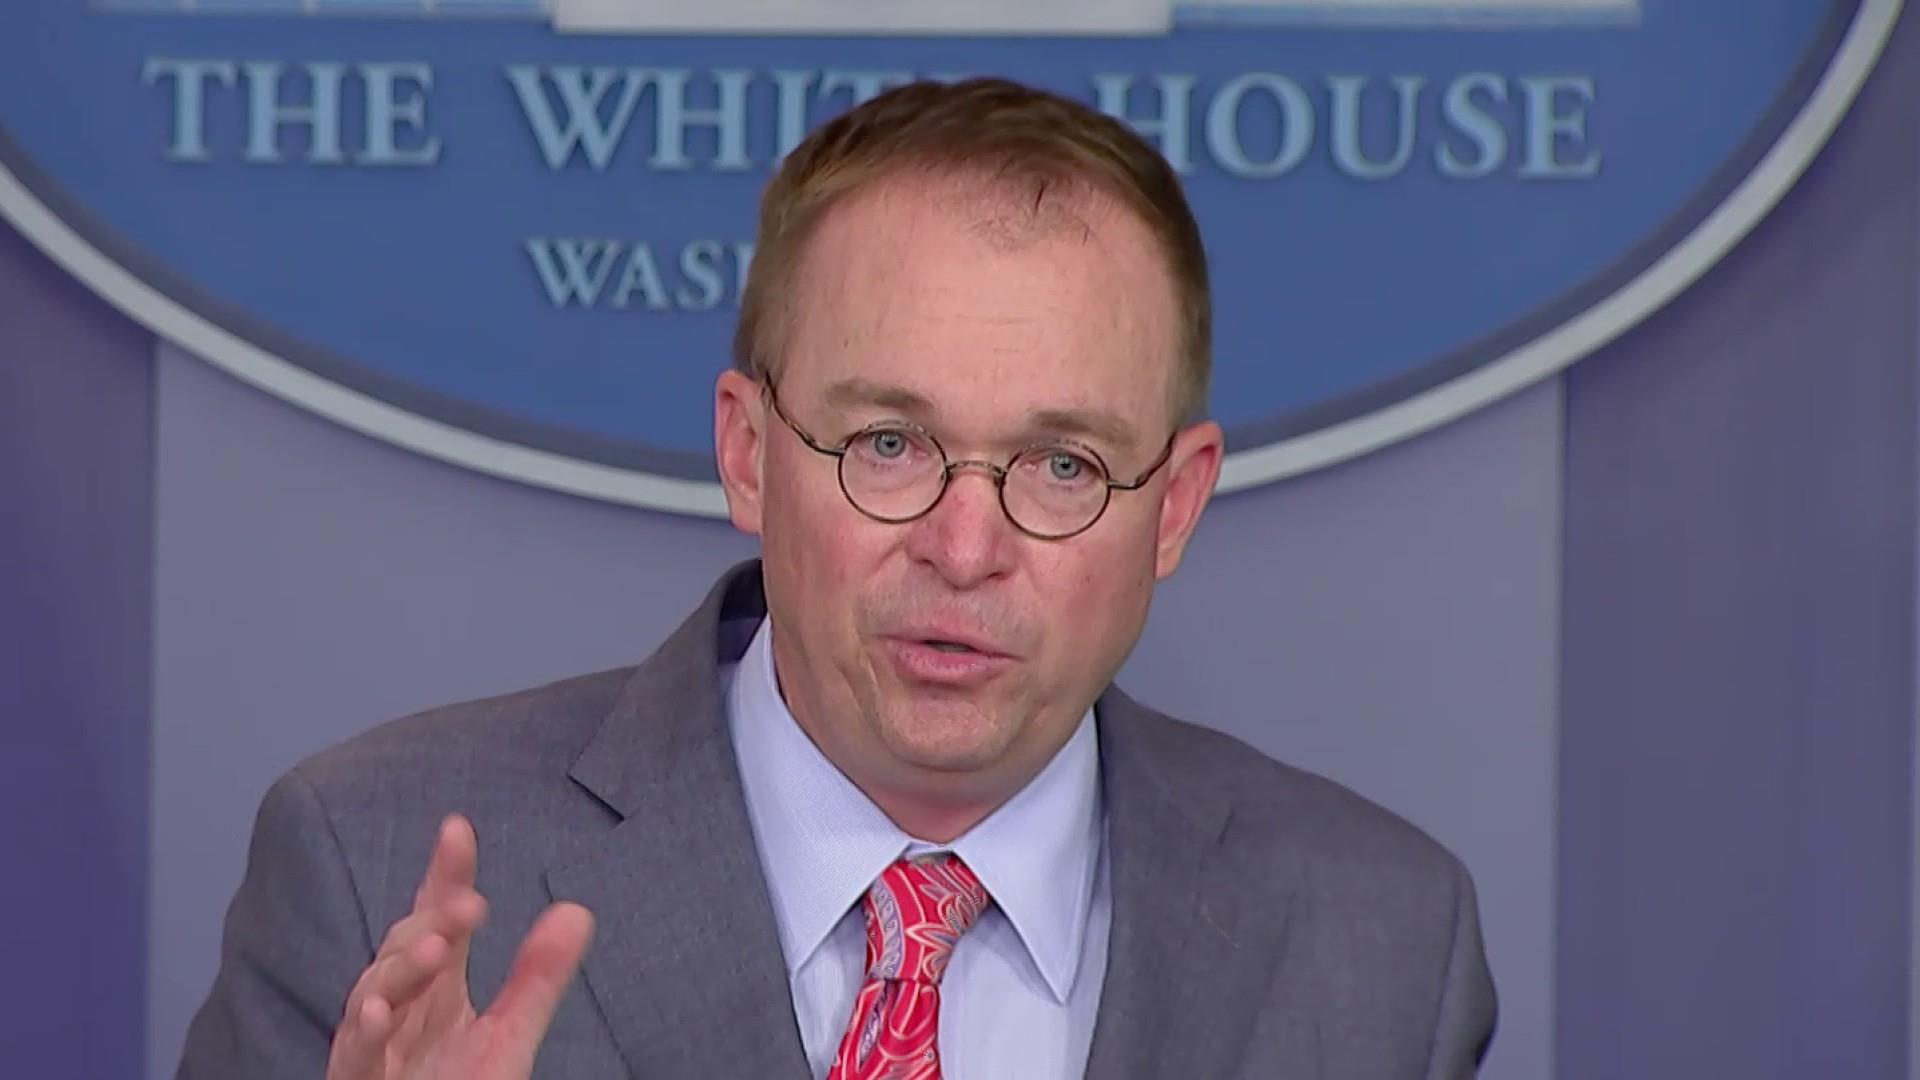 'It happens all the time': Mulvaney tells reporter to 'get over it' after quid pro quo admission